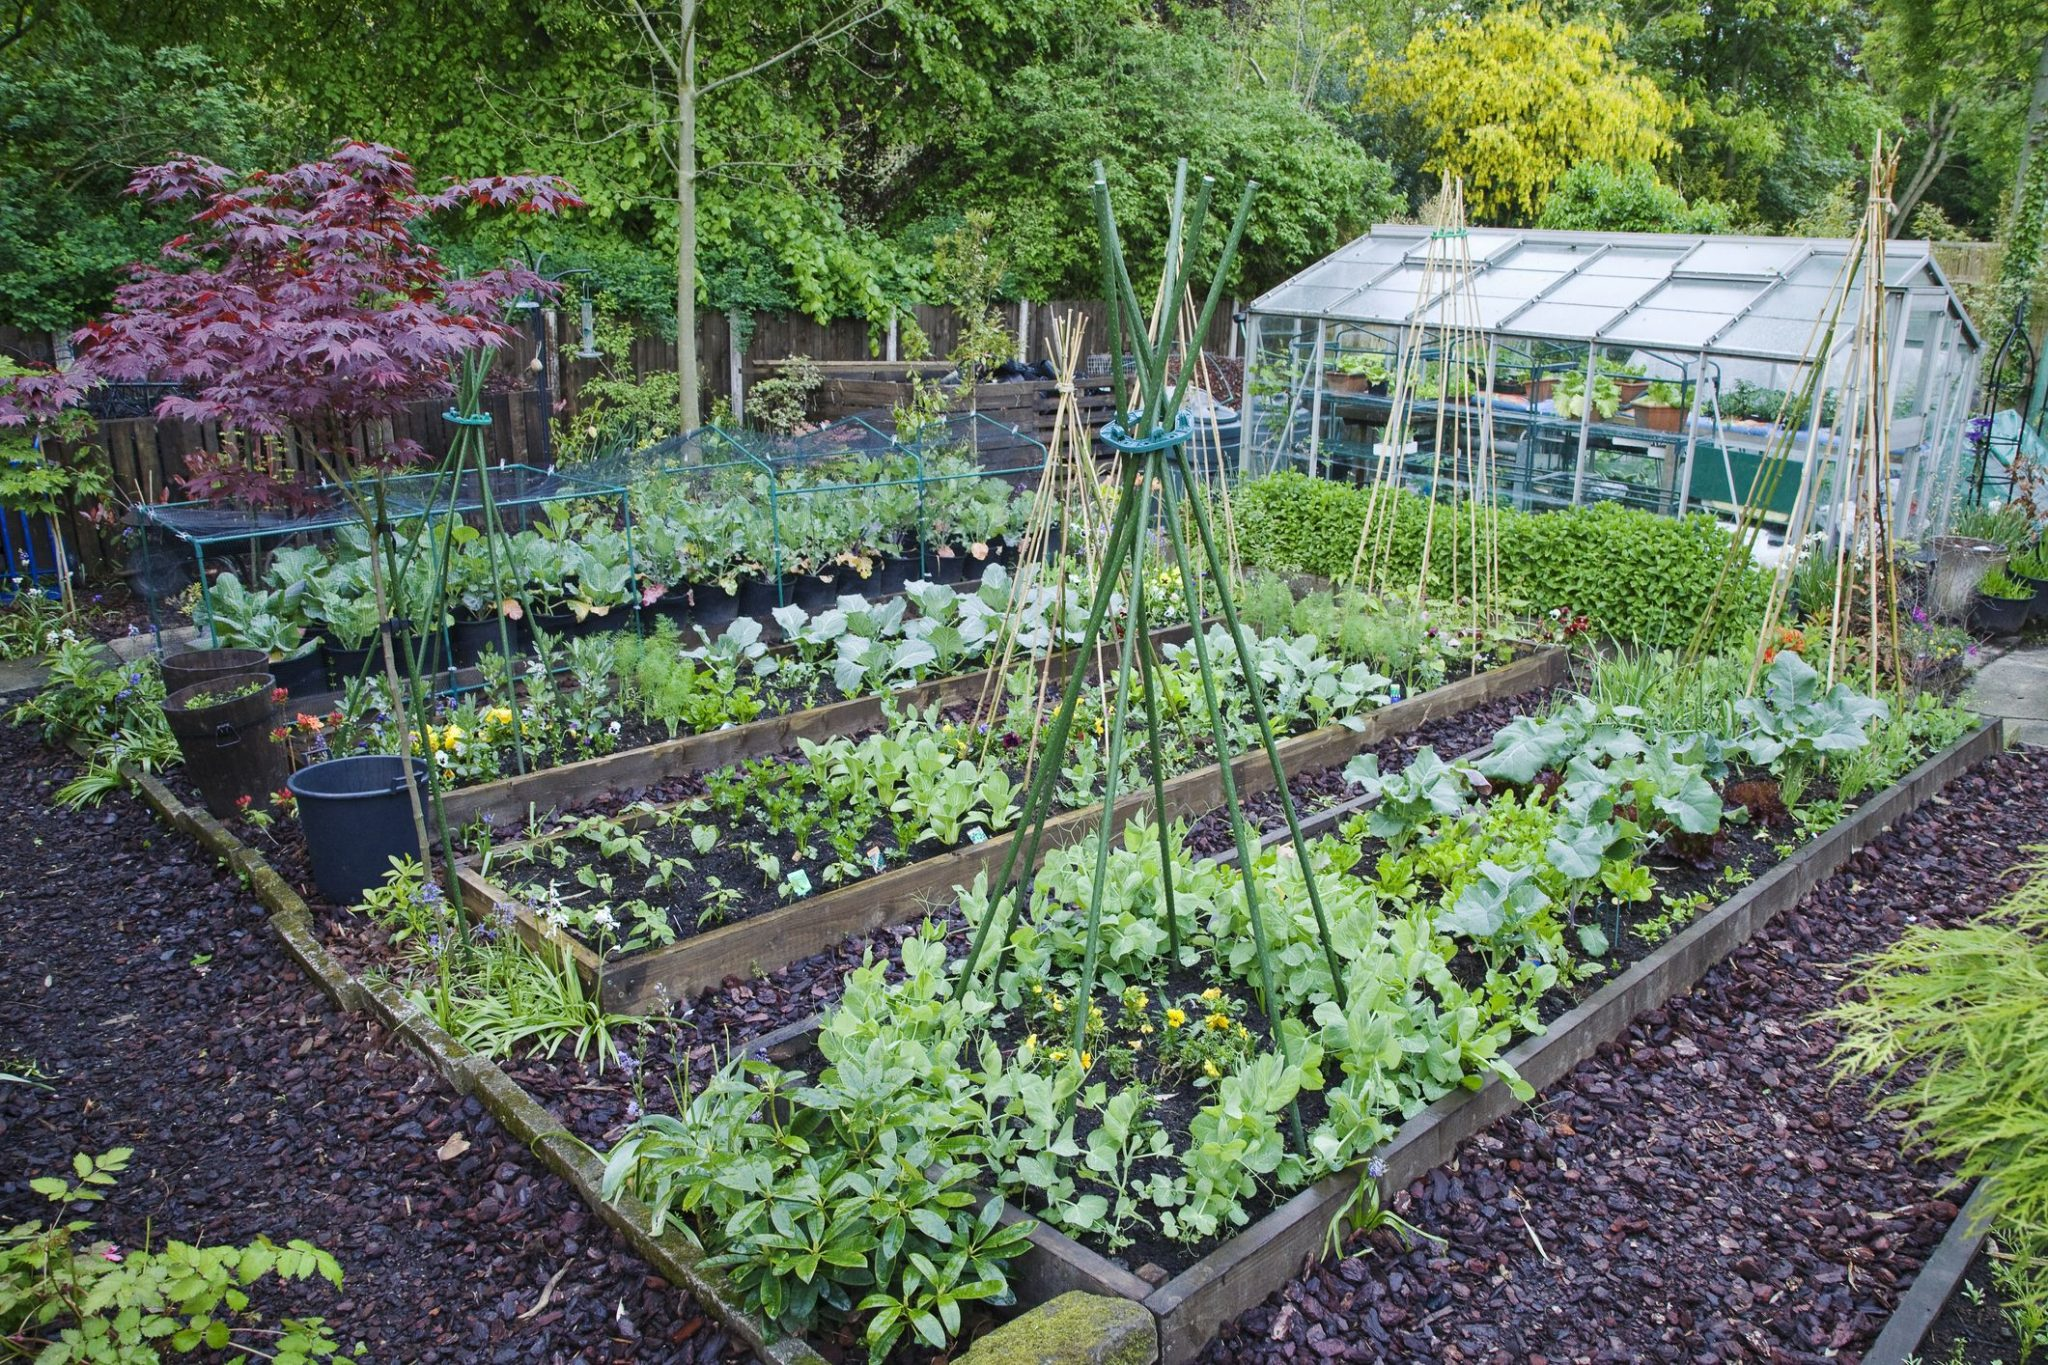 Best Seeds to Grow Your Own Garden